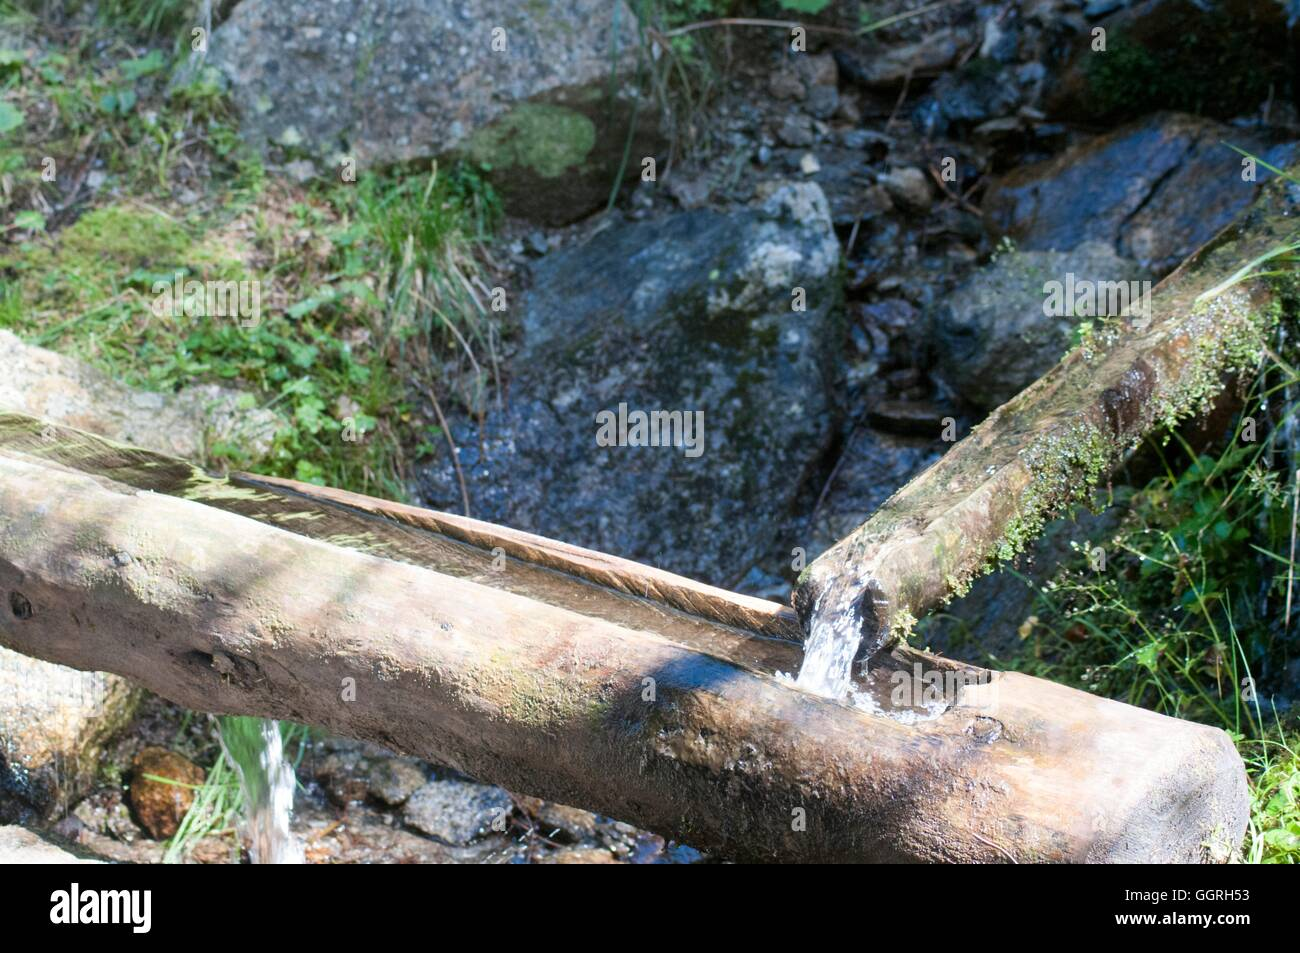 Wooden water ducts transfers water for irrigation - Stock Image